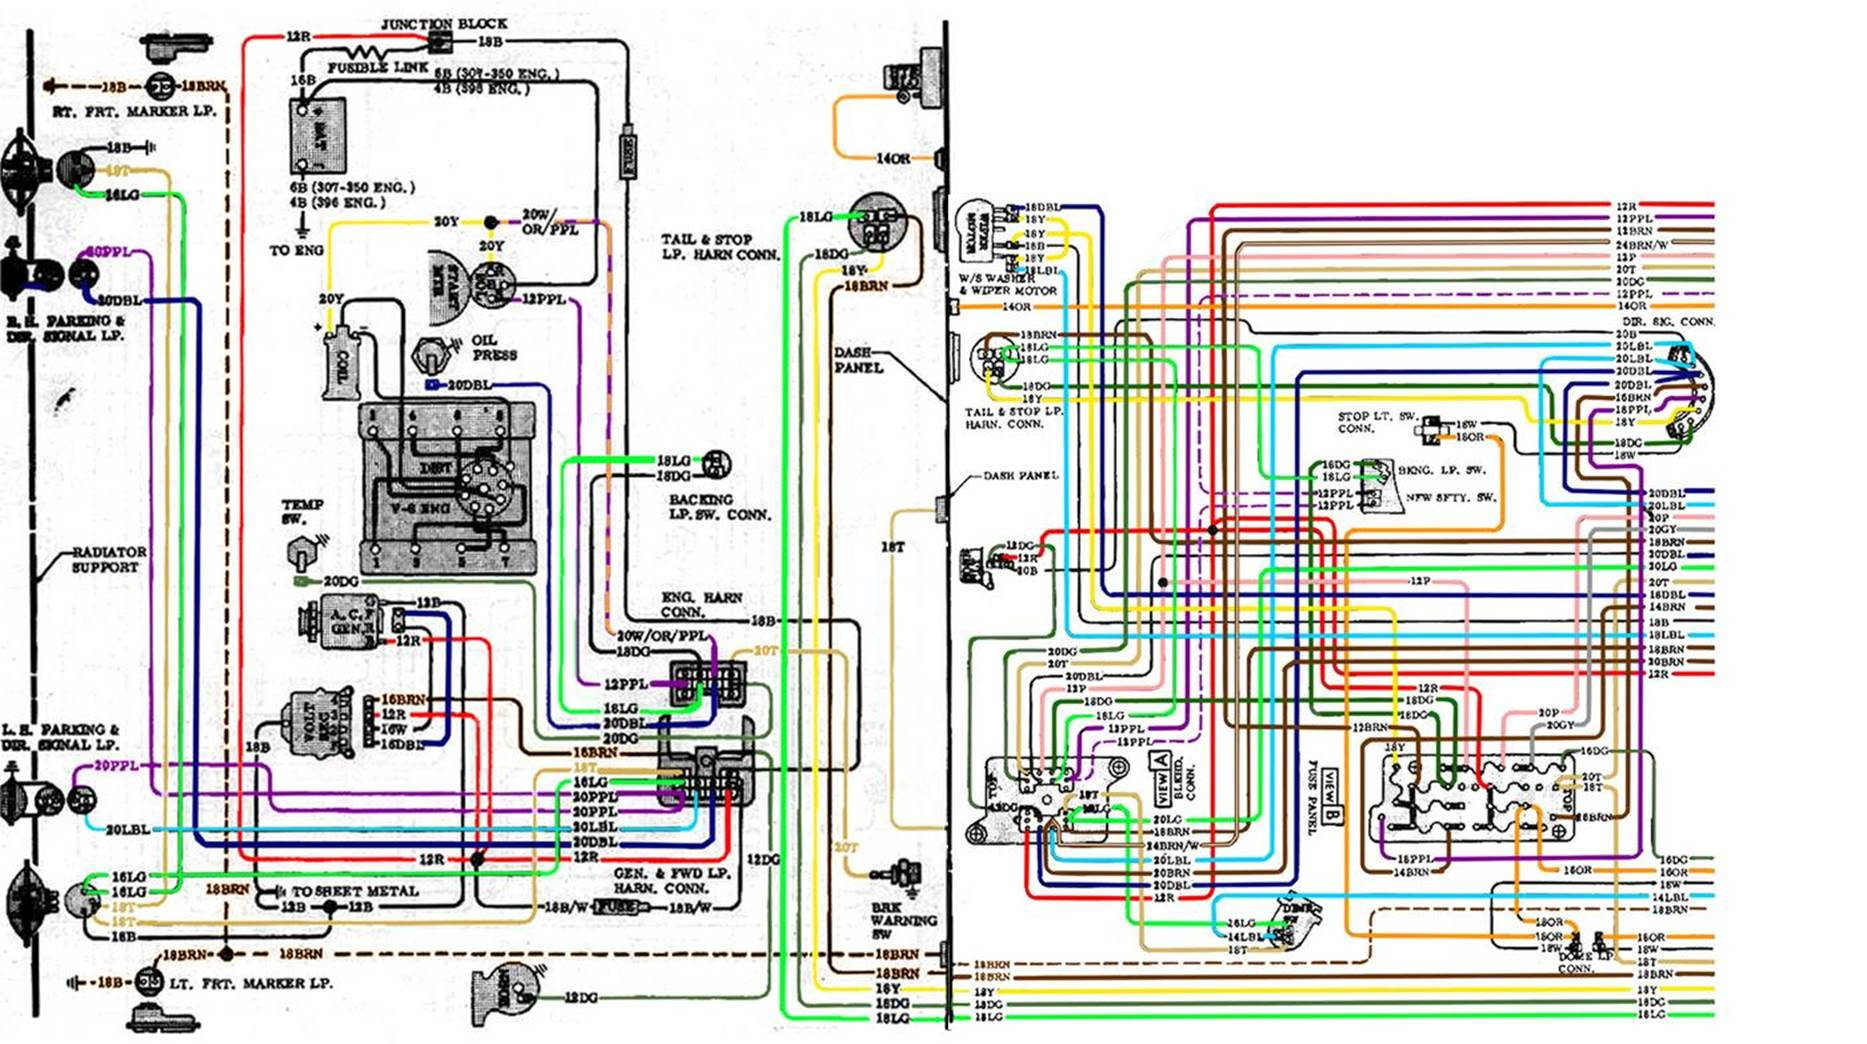 image002 67 72 chevy wiring diagram 1972 Chevelle Engine Wiring Diagram at beritabola.co